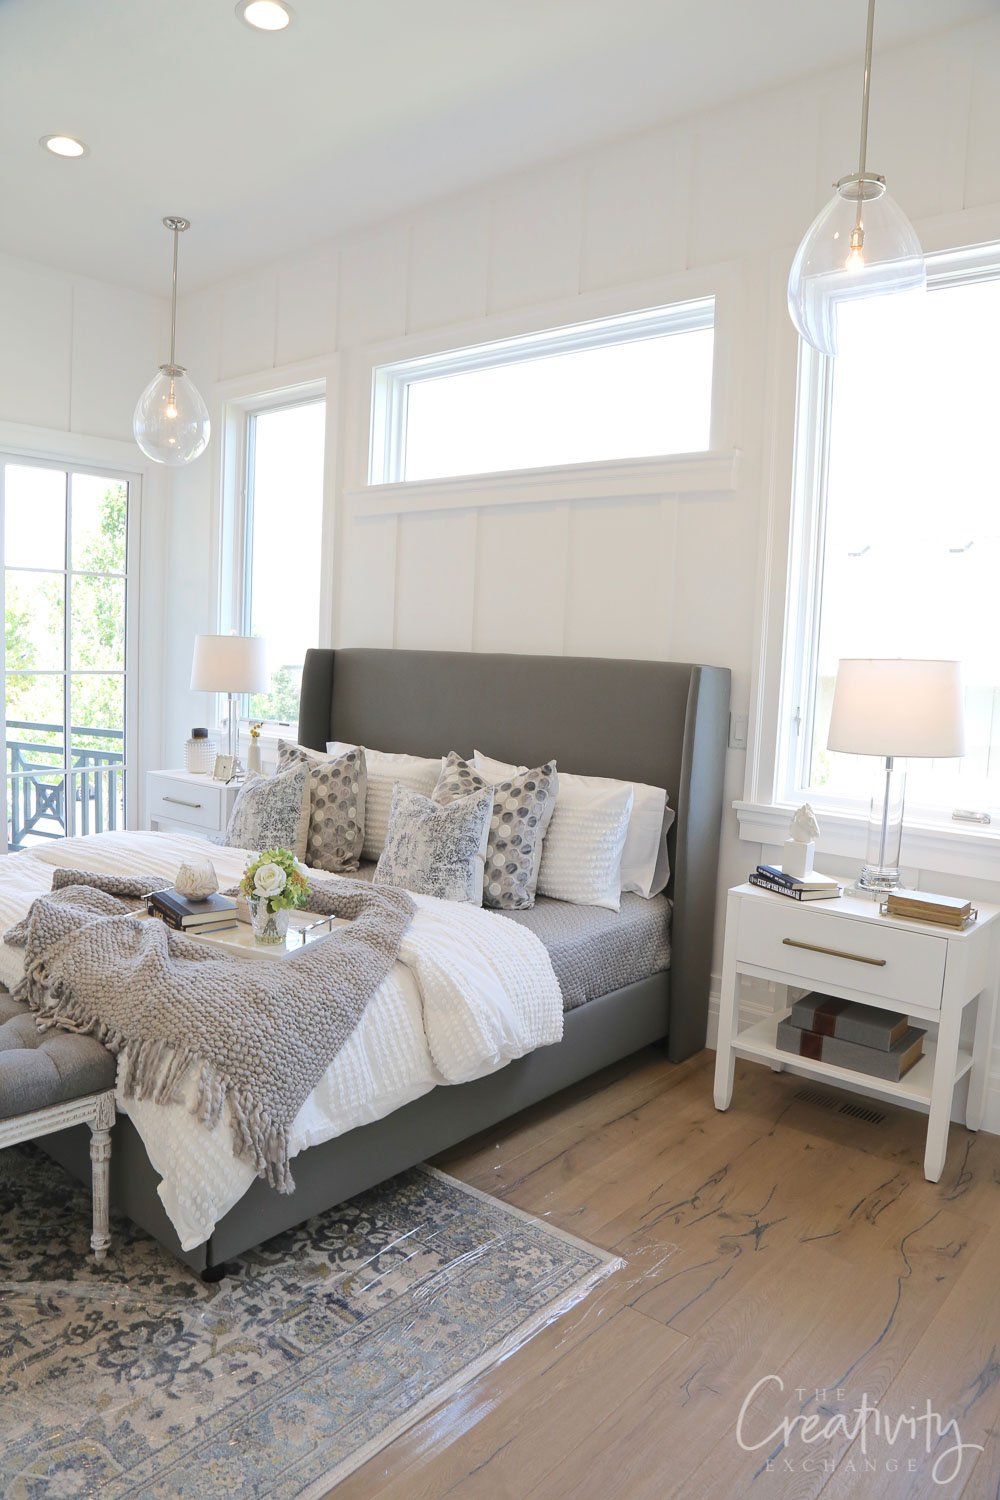 Wall color is Benjamin Moore Simply White